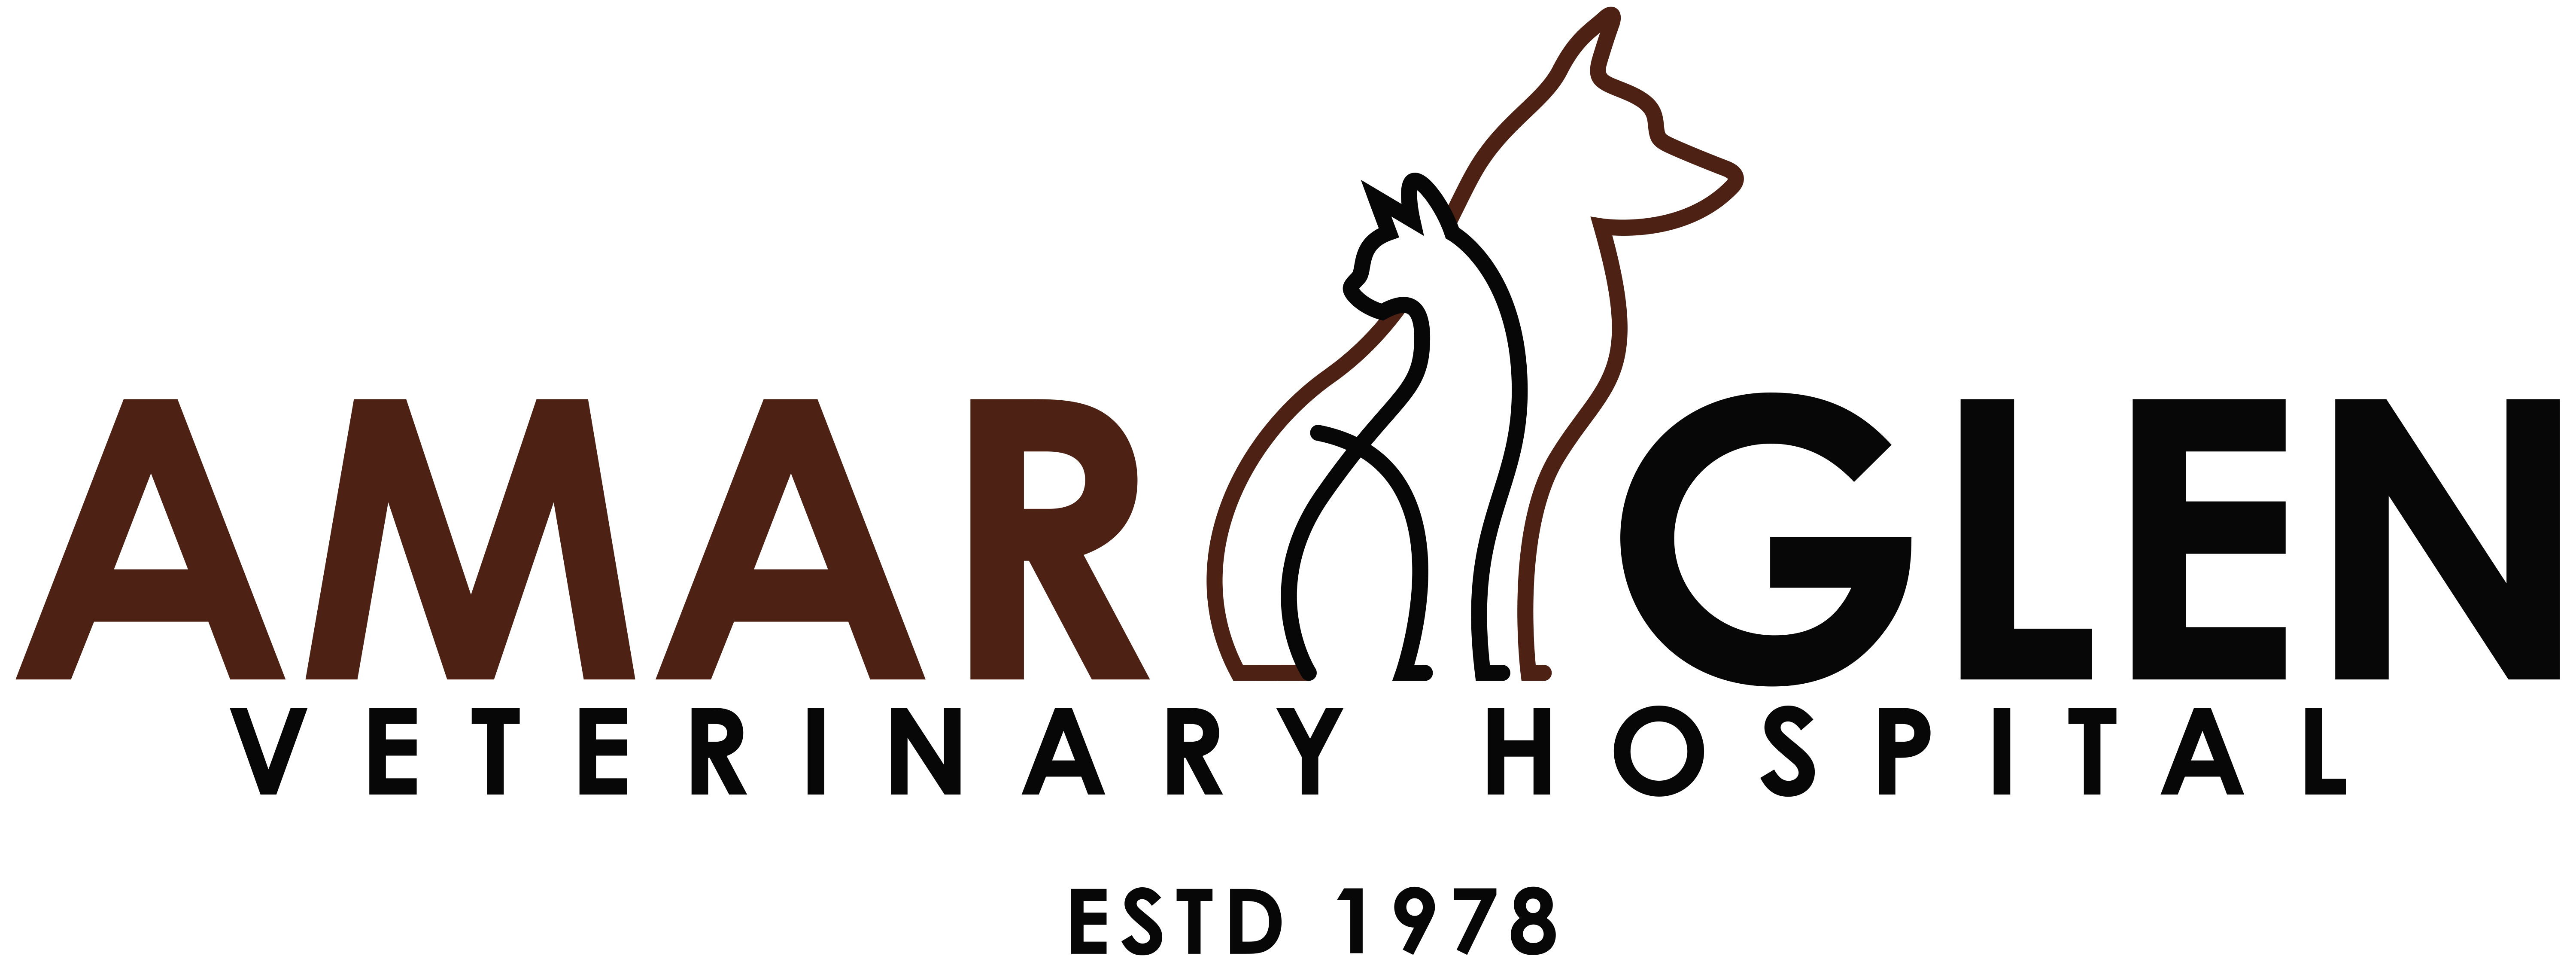 Amar Glen Veterinary Hospital